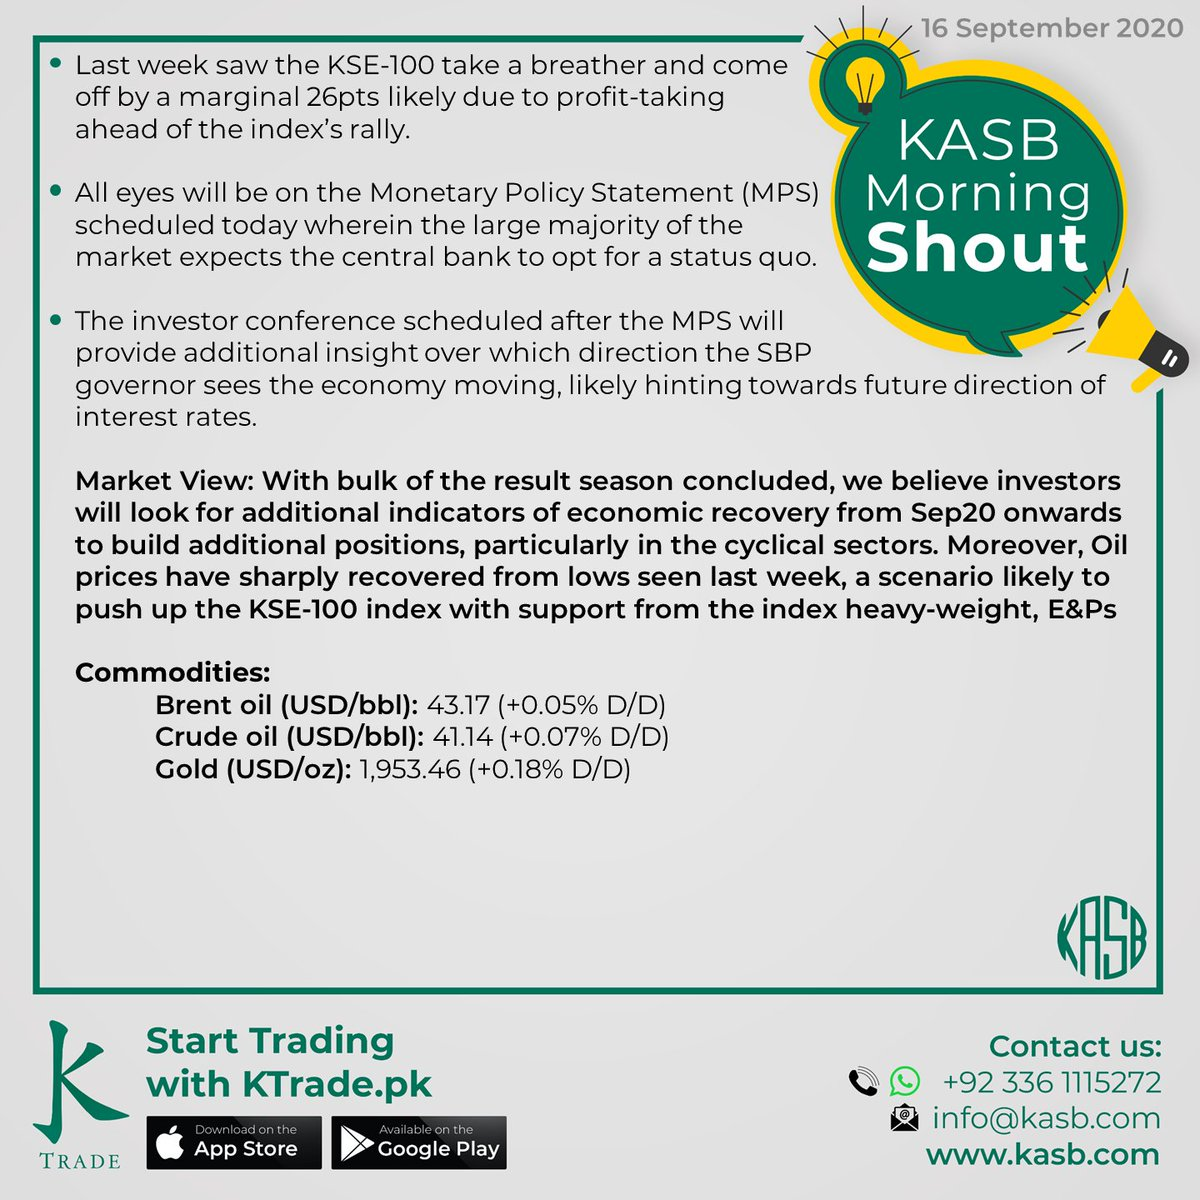 KASB Morning Shout: Our views on today's news #kasb #smartinvesting #psx #stockmarket #KTrade #onlinetrading #pakistaneconomy #imrankhan #sbp #inflation #kse100 #brokeragehouse #psxstocks #marketupdate #emergingmarkets #frontiermarkets #news #morning #today #views https://t.co/UkLONNIiJY